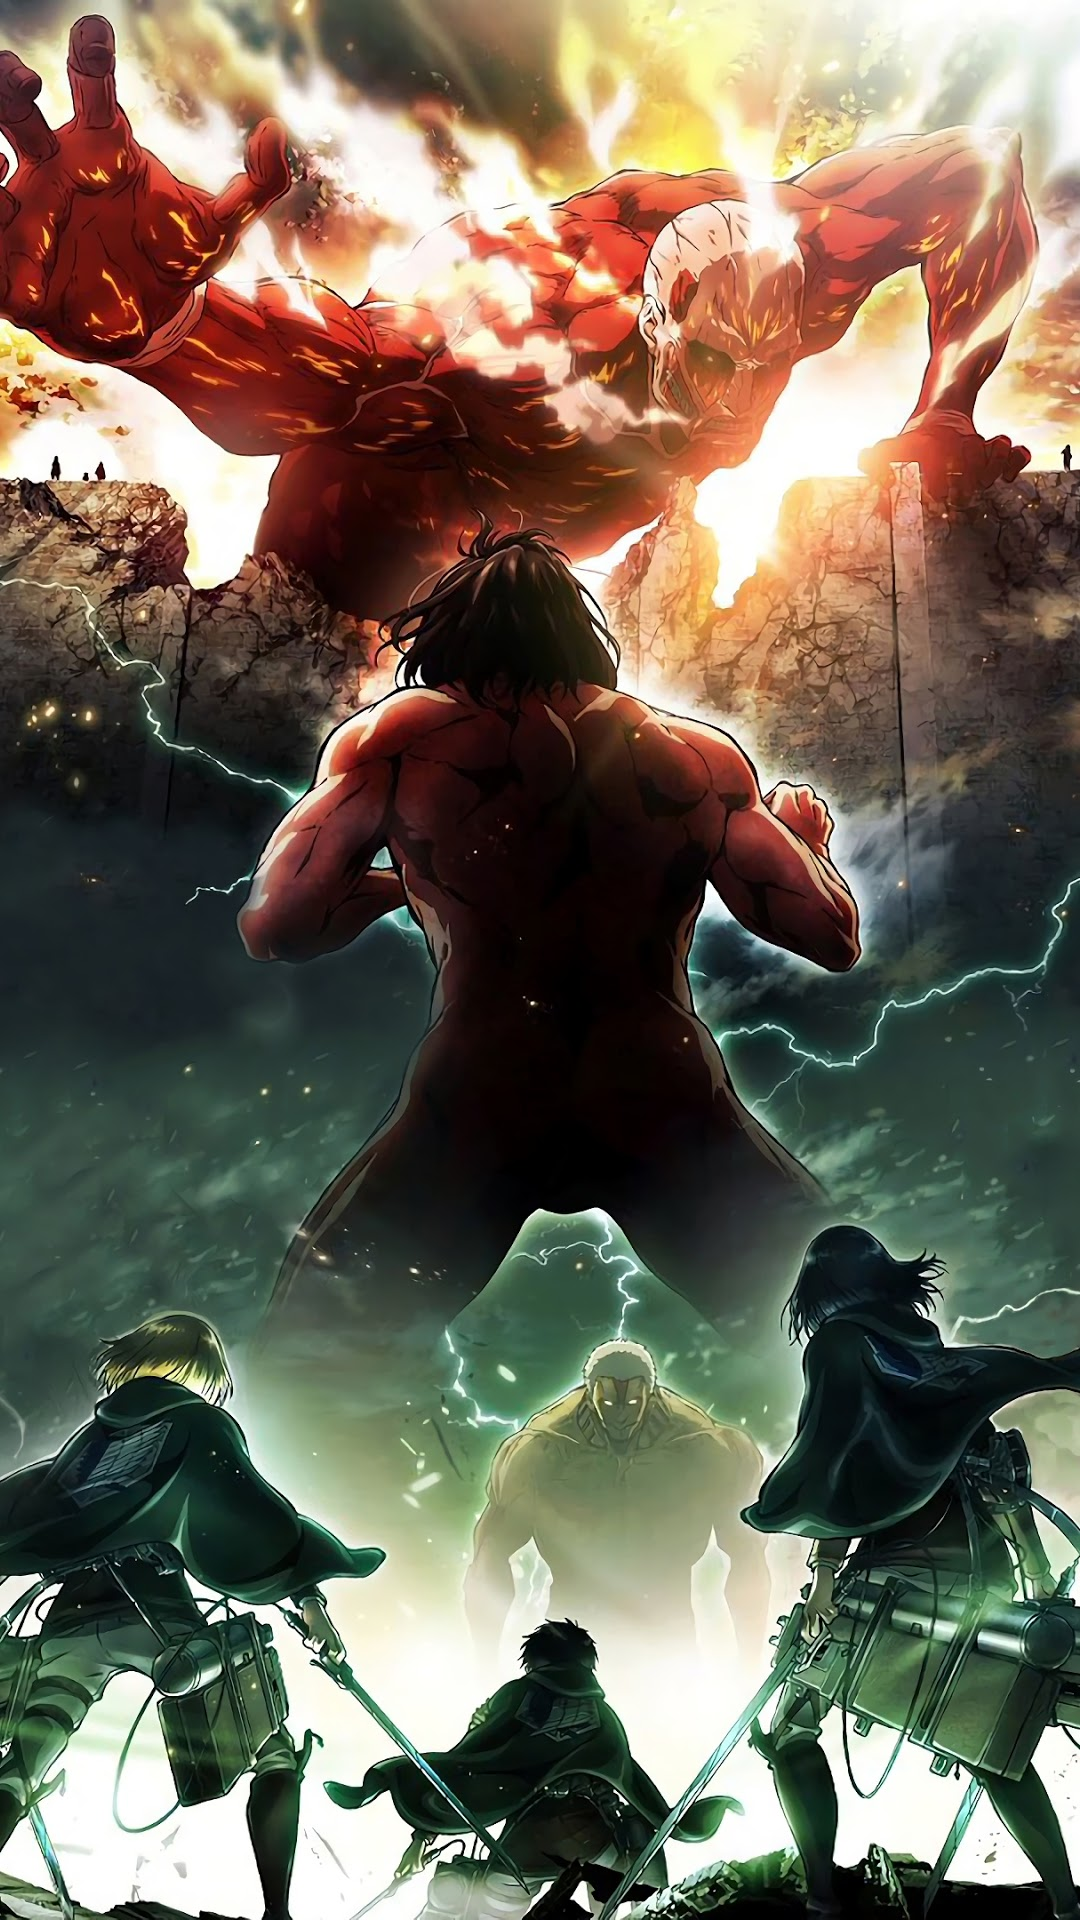 On april 15, 1912, the titanic entered history as one of the most notorious disasters at sea when the unsinkable ship struck an iceberg. Iphone Attack On Titan Wallpaper - KoLPaPer - Awesome Free ...